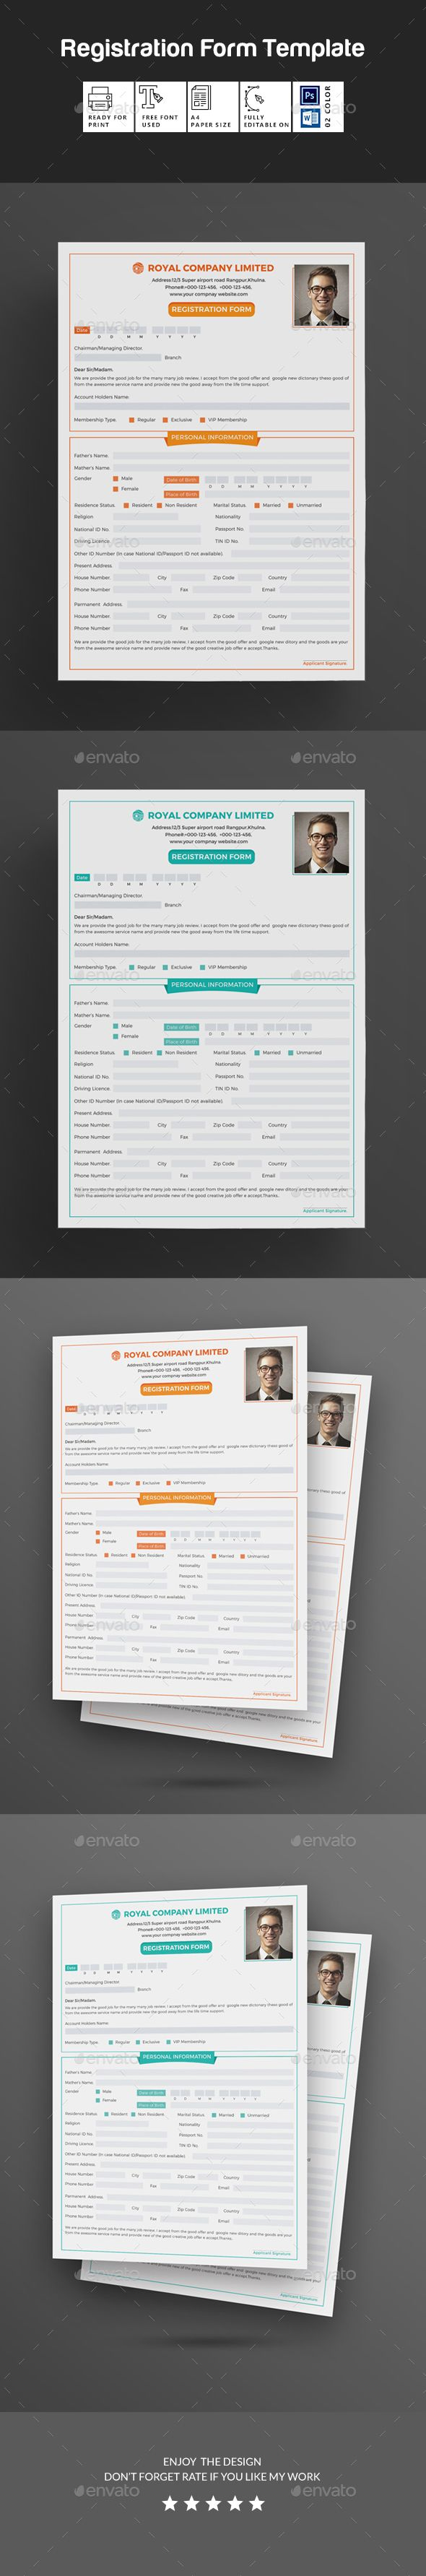 Registration Form 30 best Web Forms images